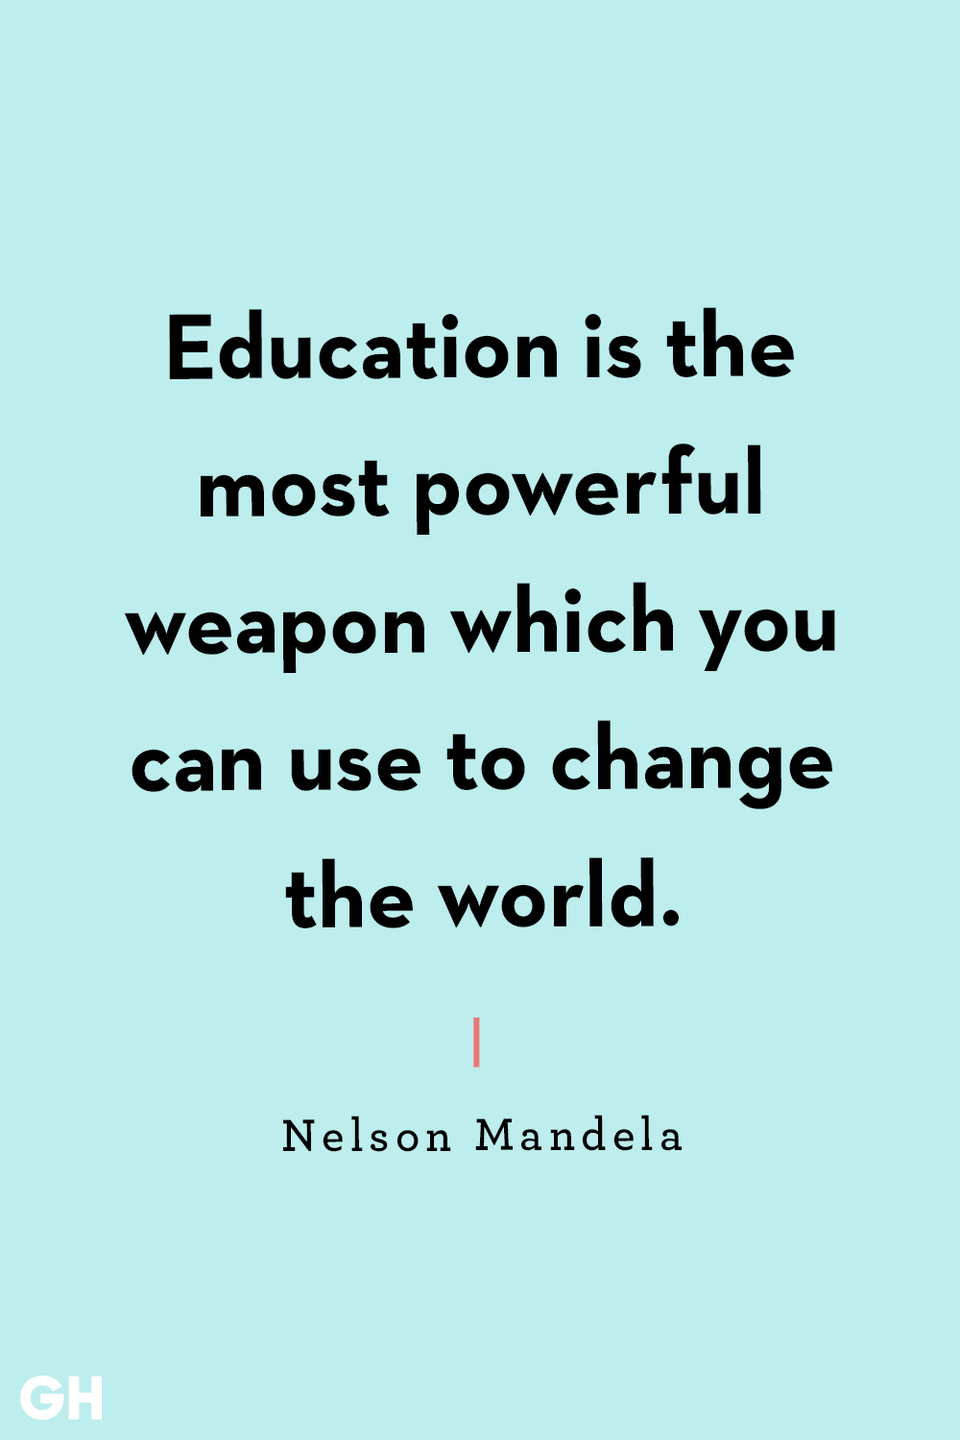 <p>Education is the most powerful weapon which you can use to change the world.</p>